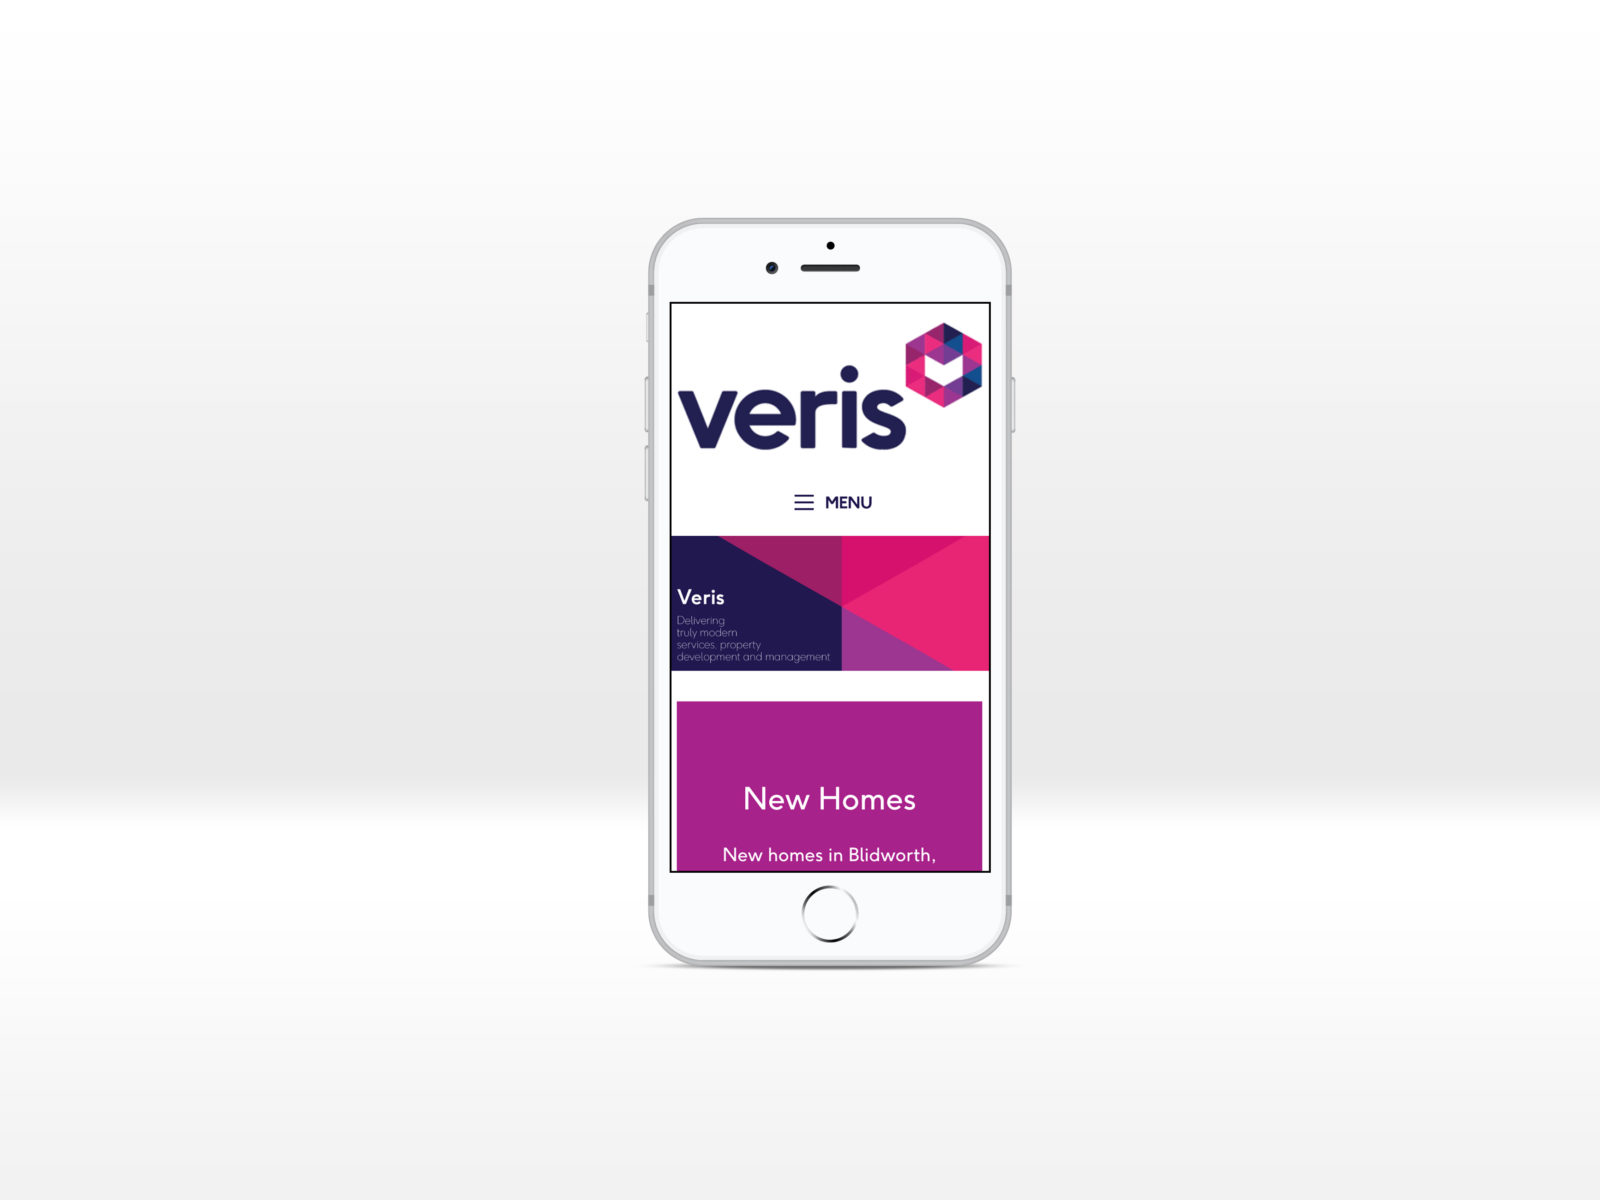 Veris homepage displayed on an iPhone